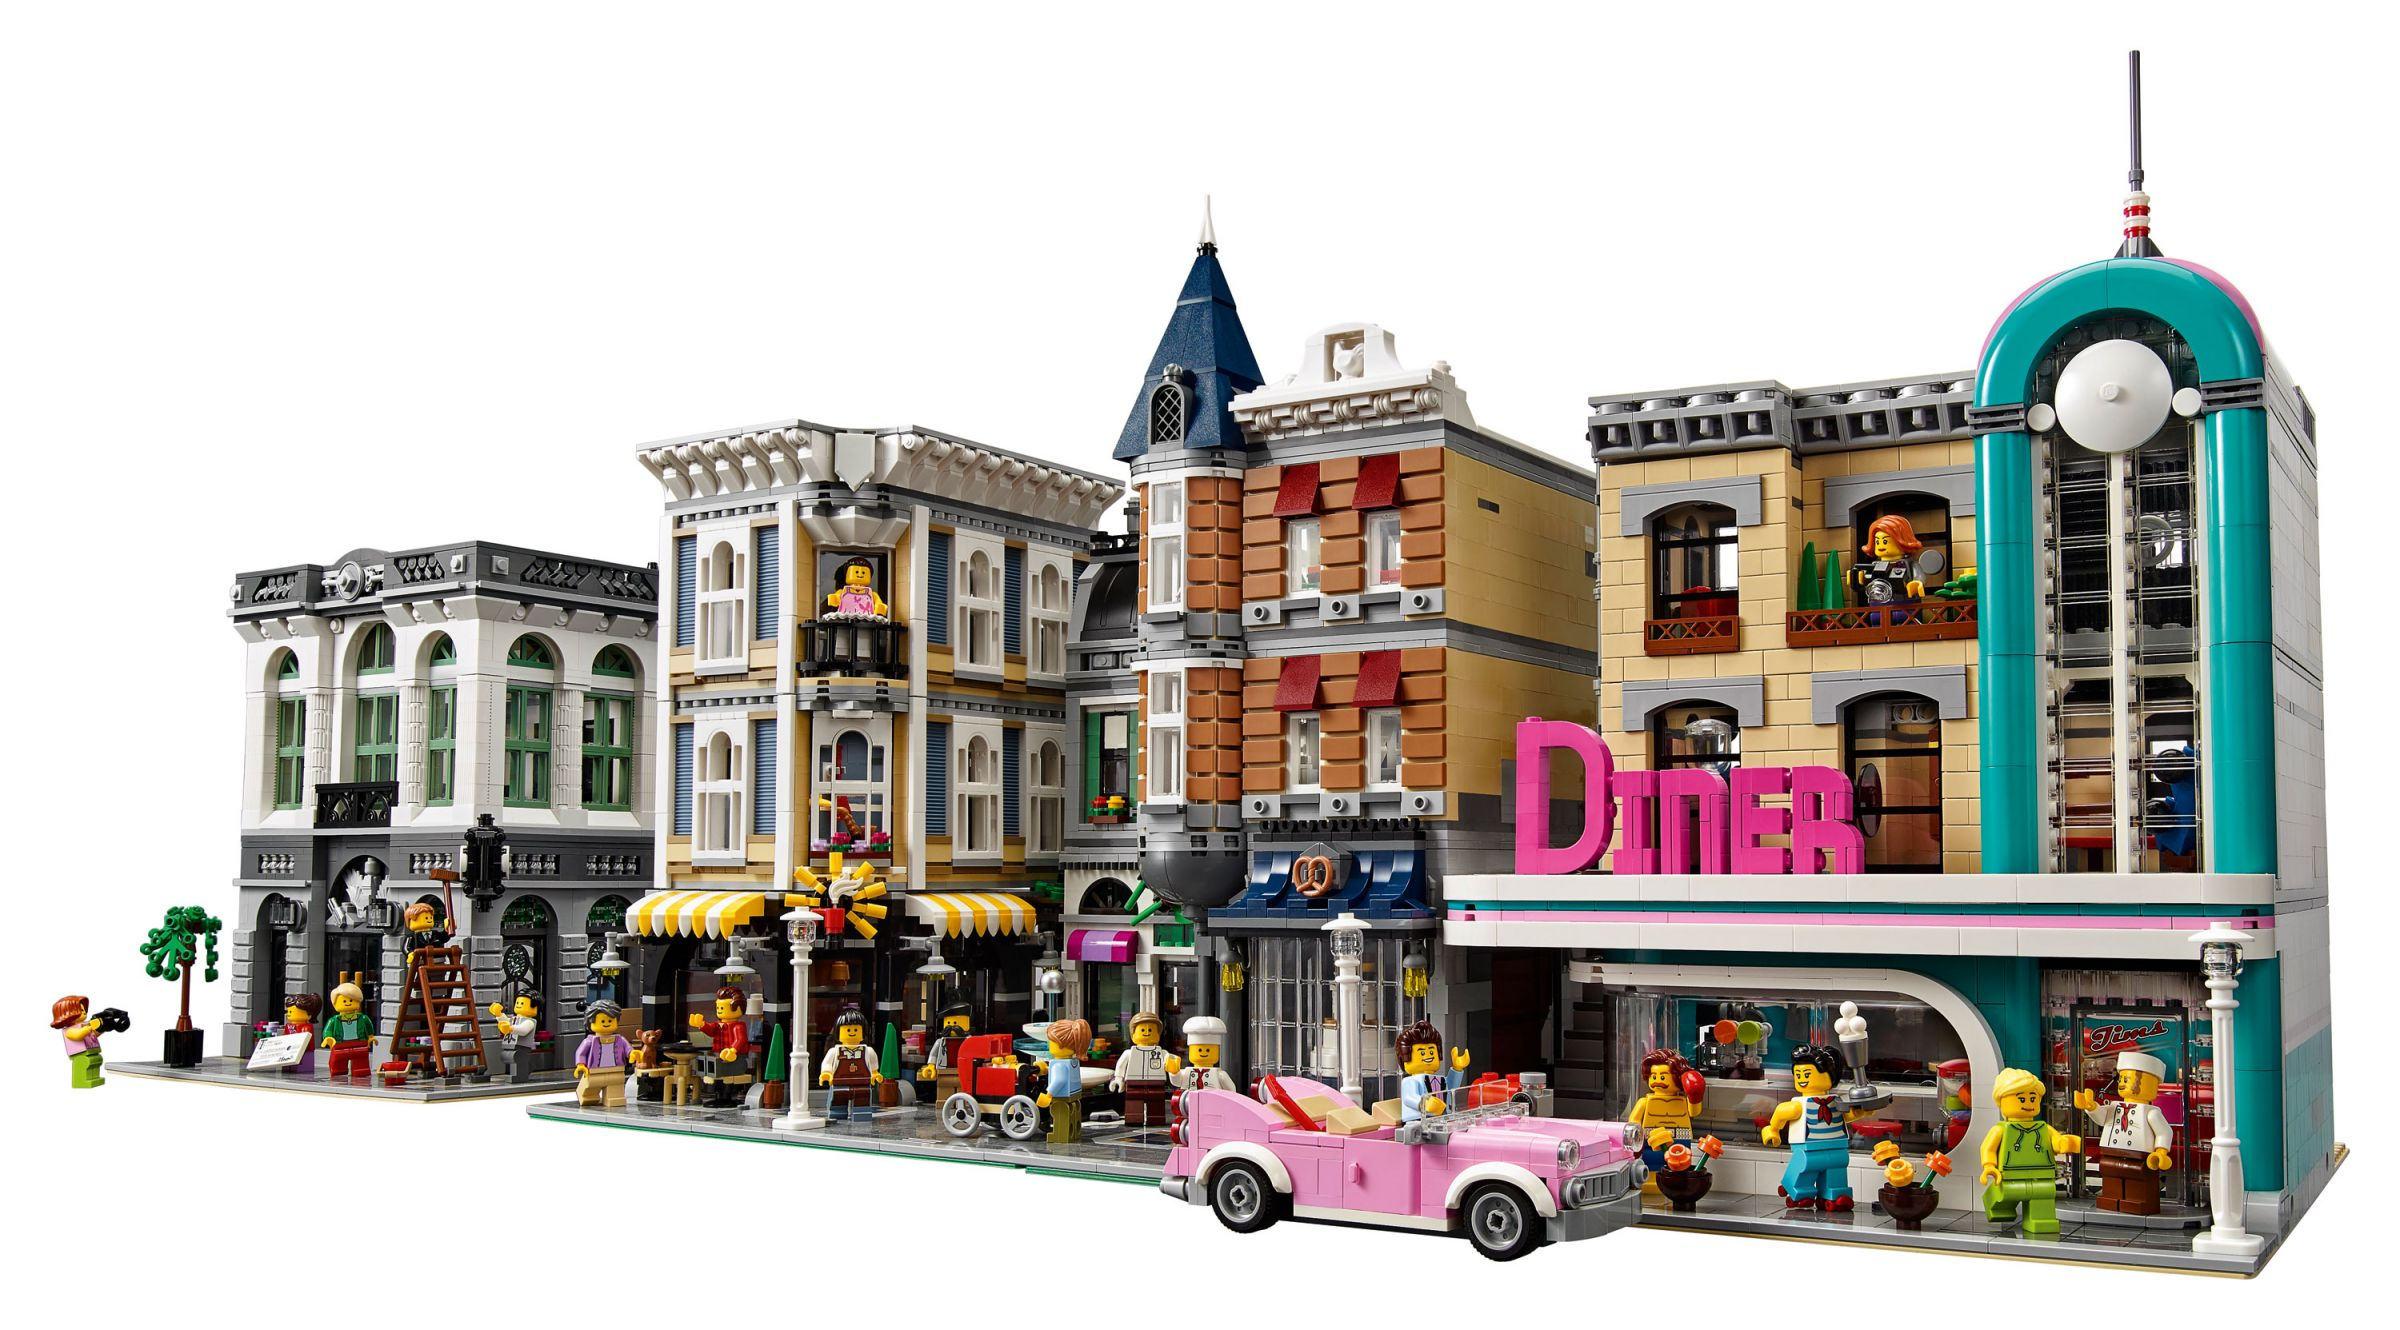 LEGO Advanced Models 10260 Amerikanisches Diner LEGO_10260_Downtown-Diner_Modulars_in_a_row.jpg